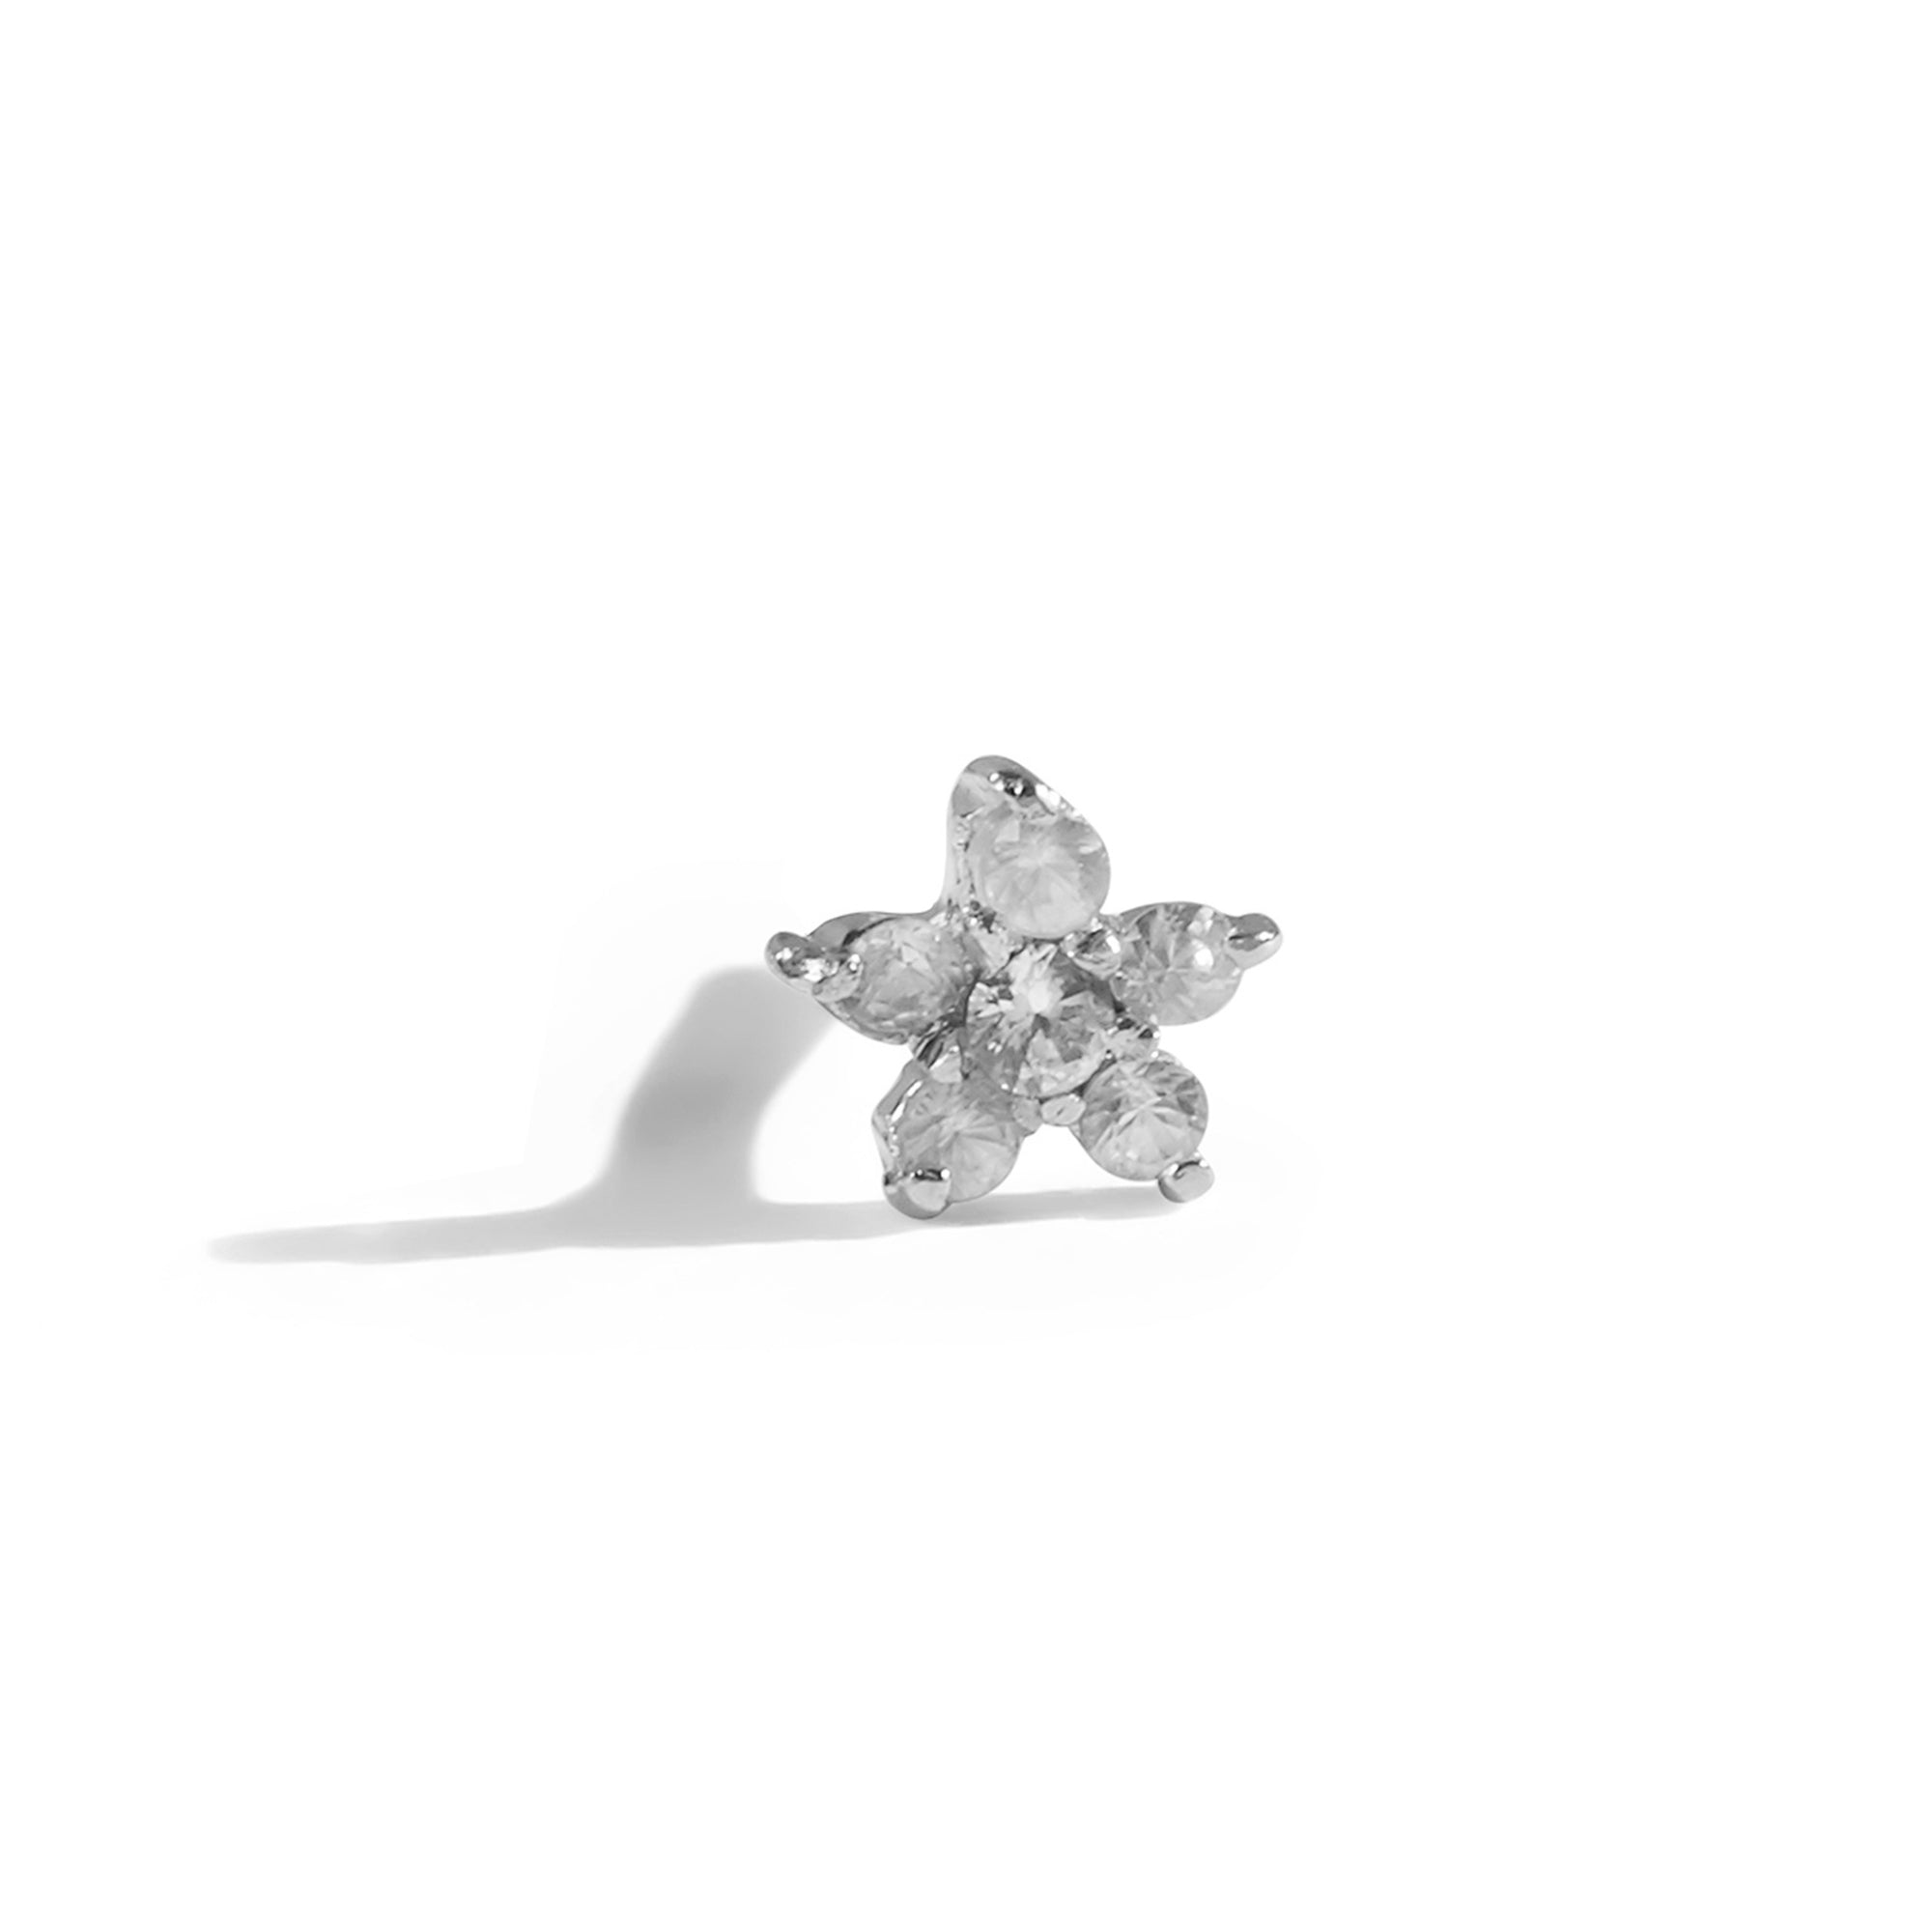 The White Sapphire Flower Stud in Silver